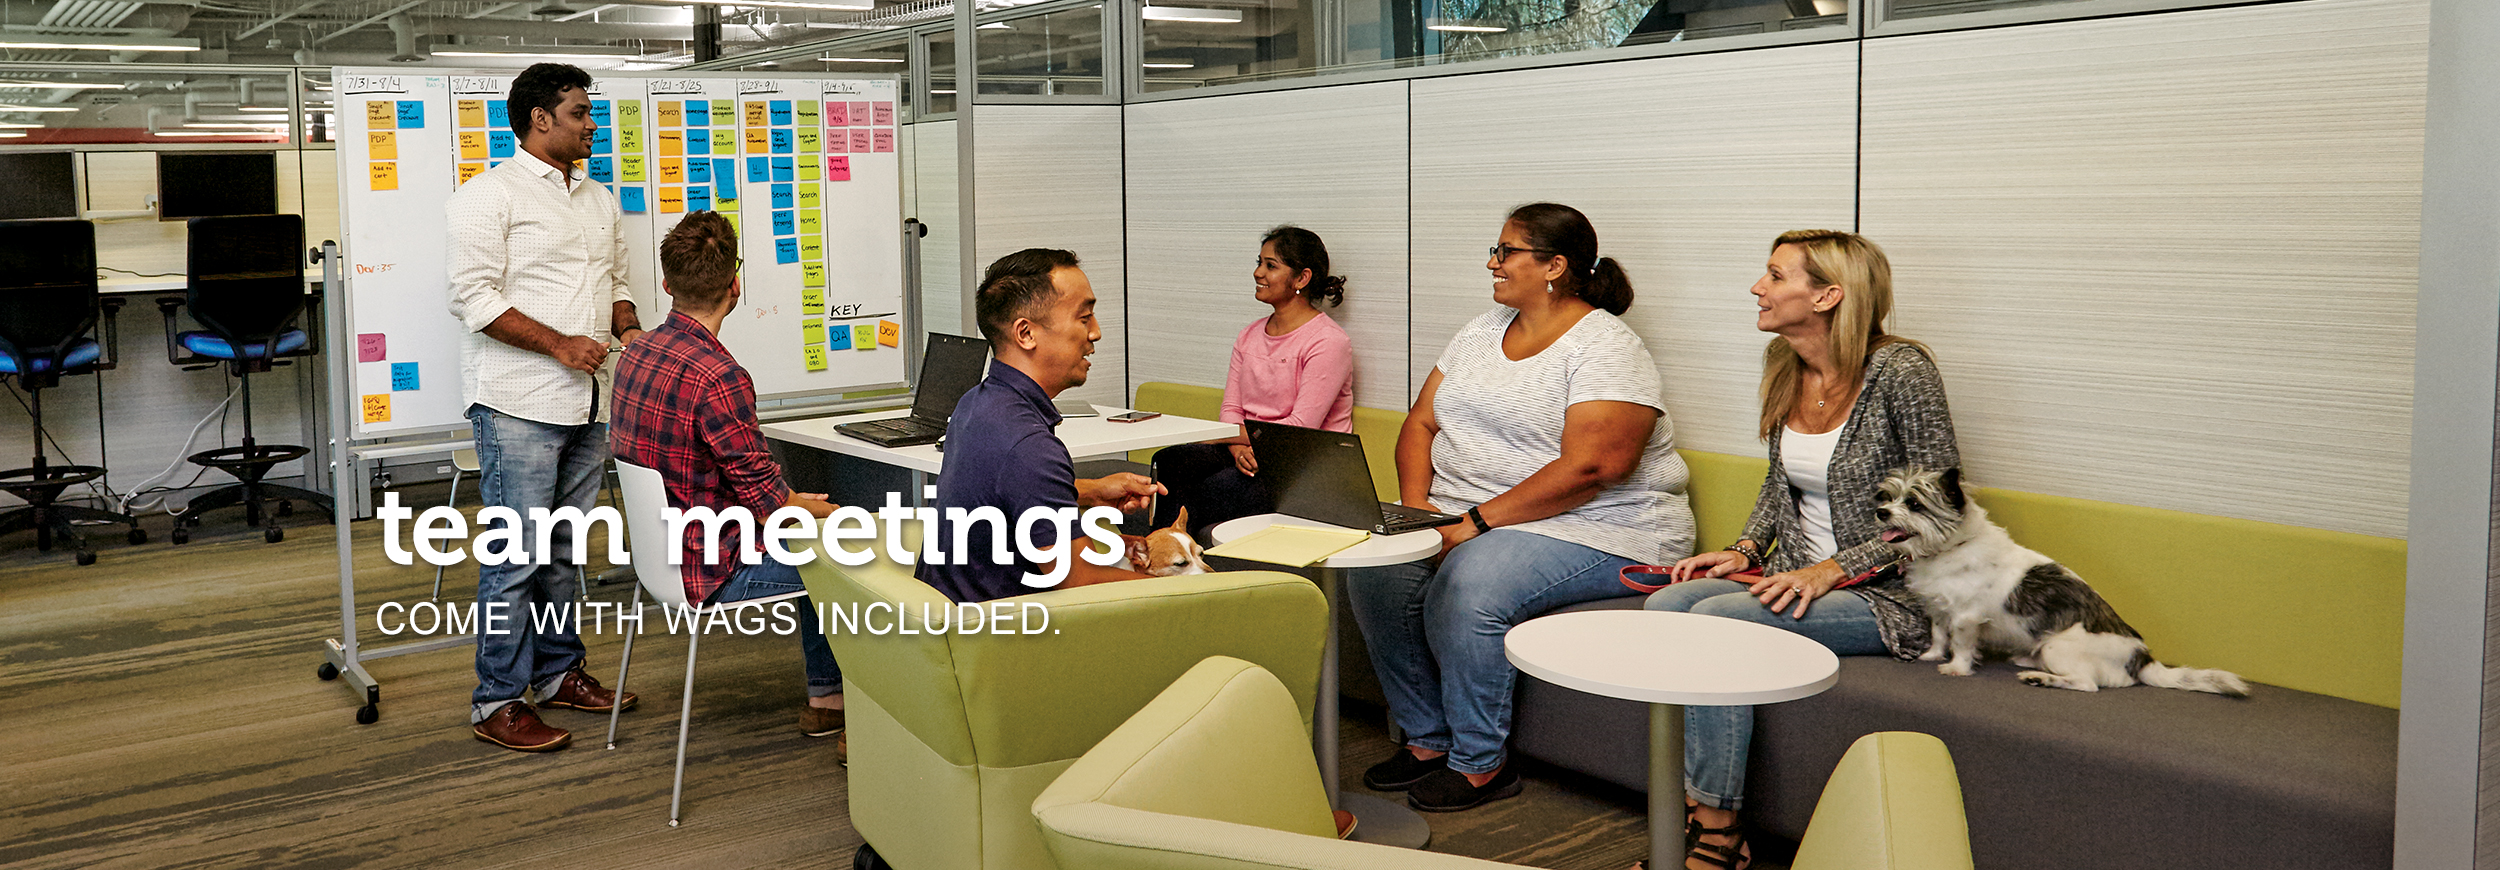 "A gathering of diverse men and women meeting in an informal lounge, with a whiteboard covered in sticky notes in the background. In the foreground, a little dog sits on the sofa beside his female owner. Text across the image reads, ""team meetings come with wags included."""